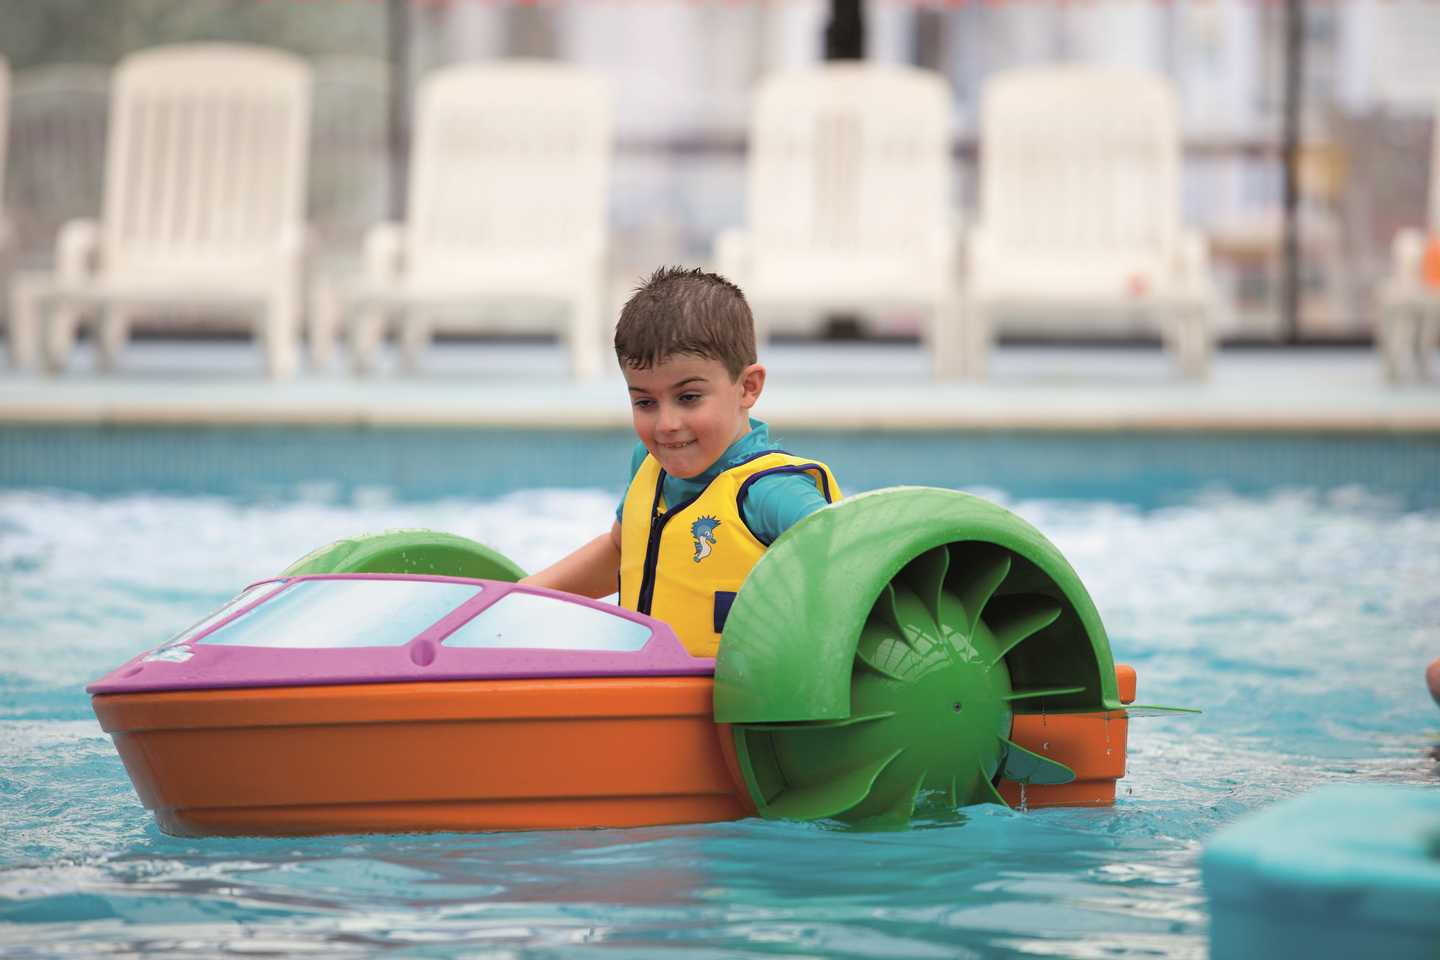 Boy in pool on Turbo Paddler